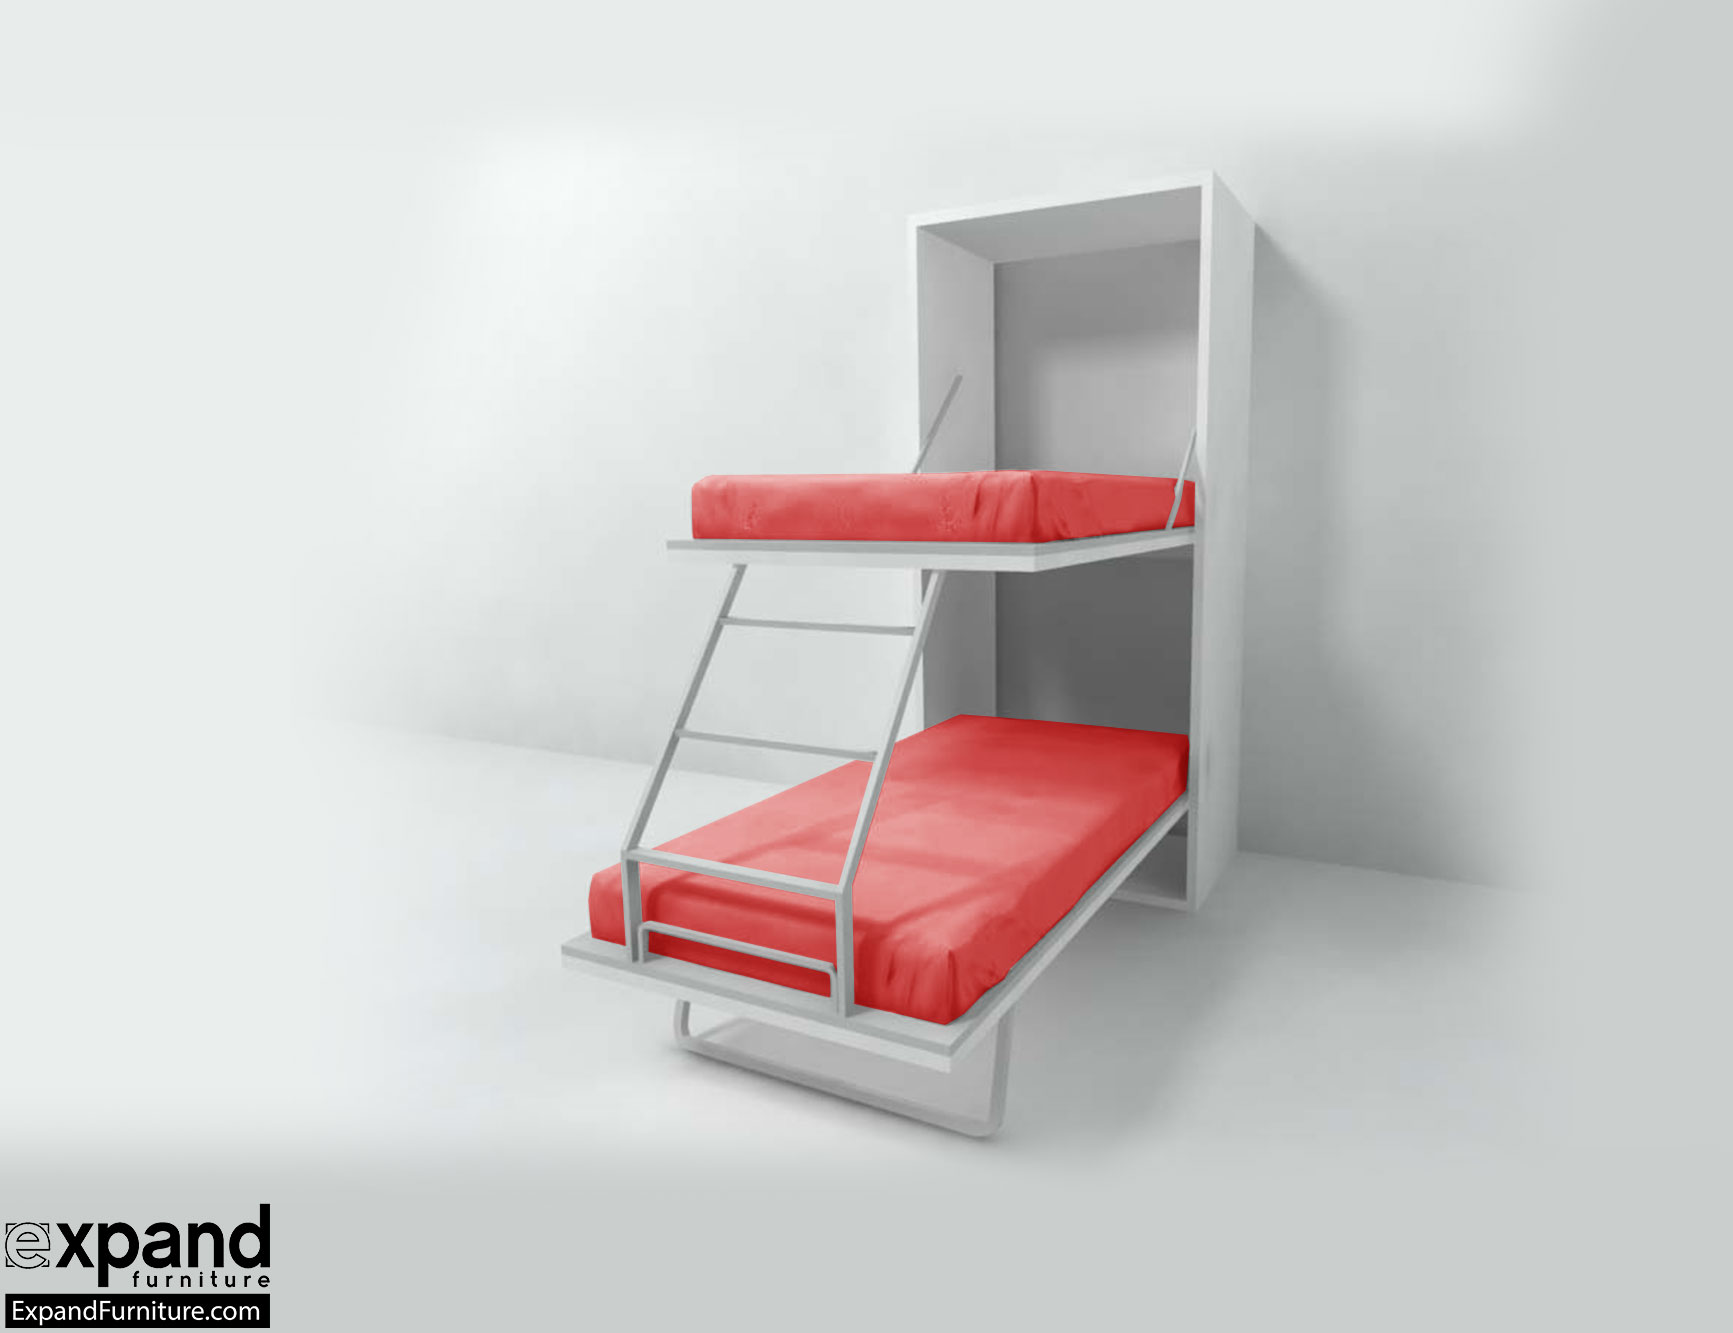 Compatto hidden vertical murphy bunk beds expand furniture - Save spacing bunk bed ...